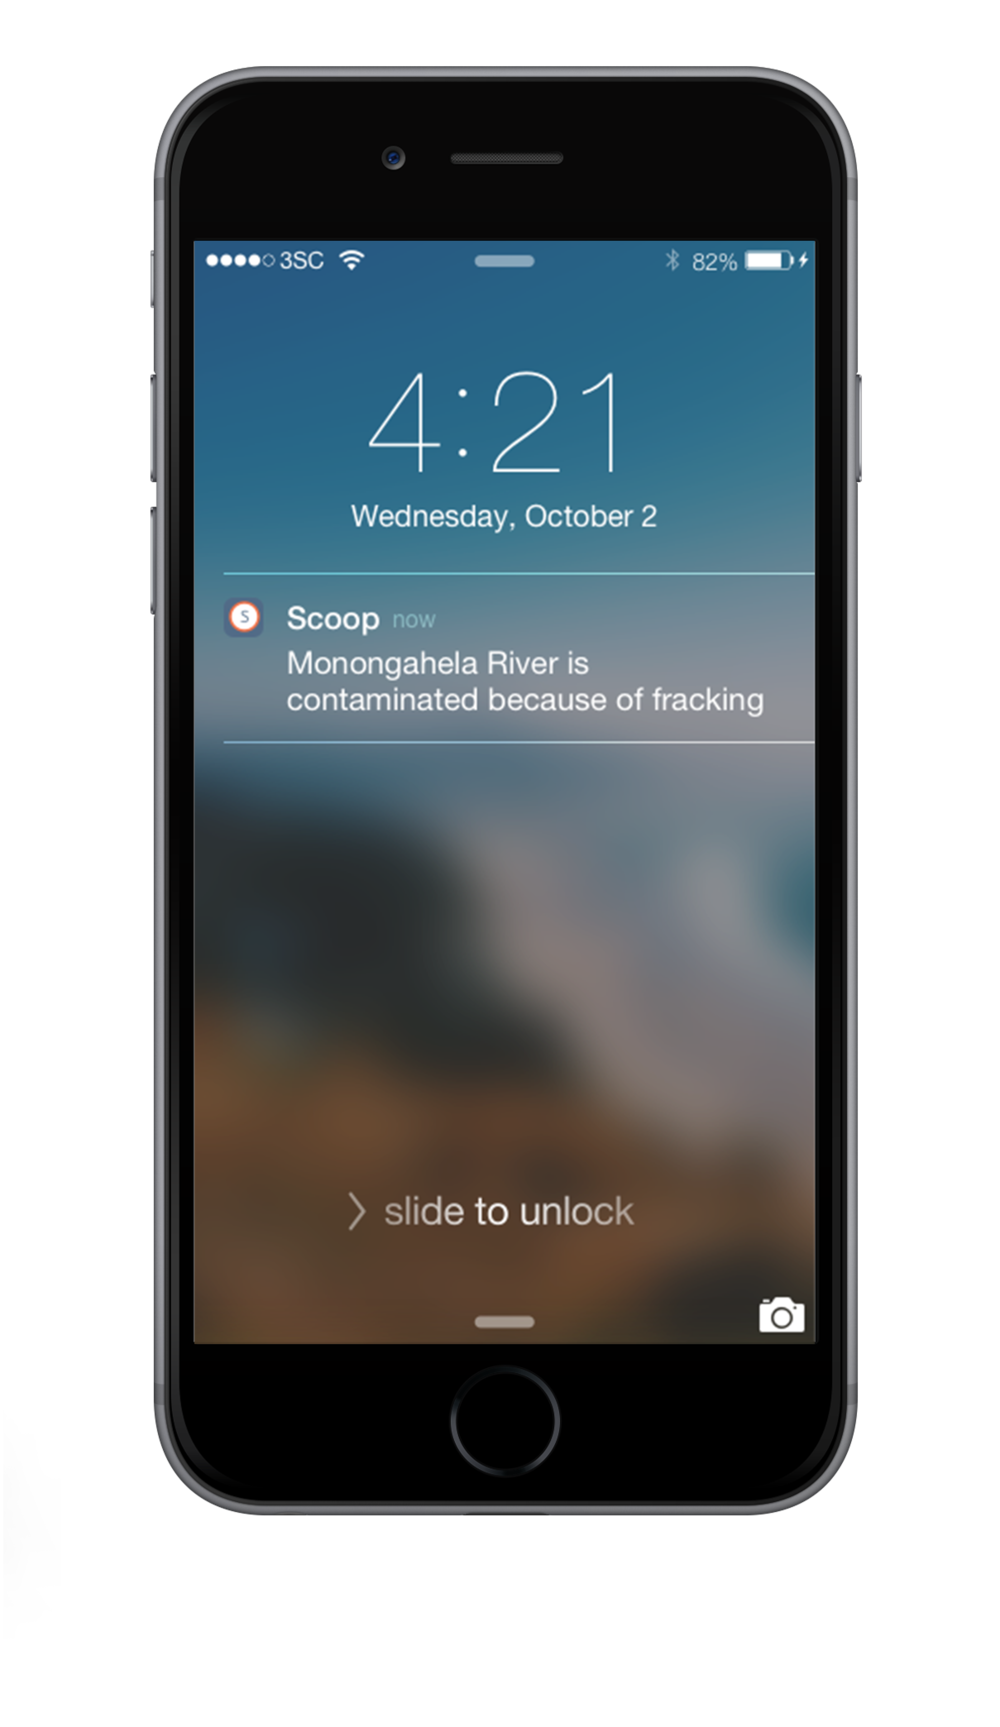 Scoop sends a notification when the user is at a designated location .